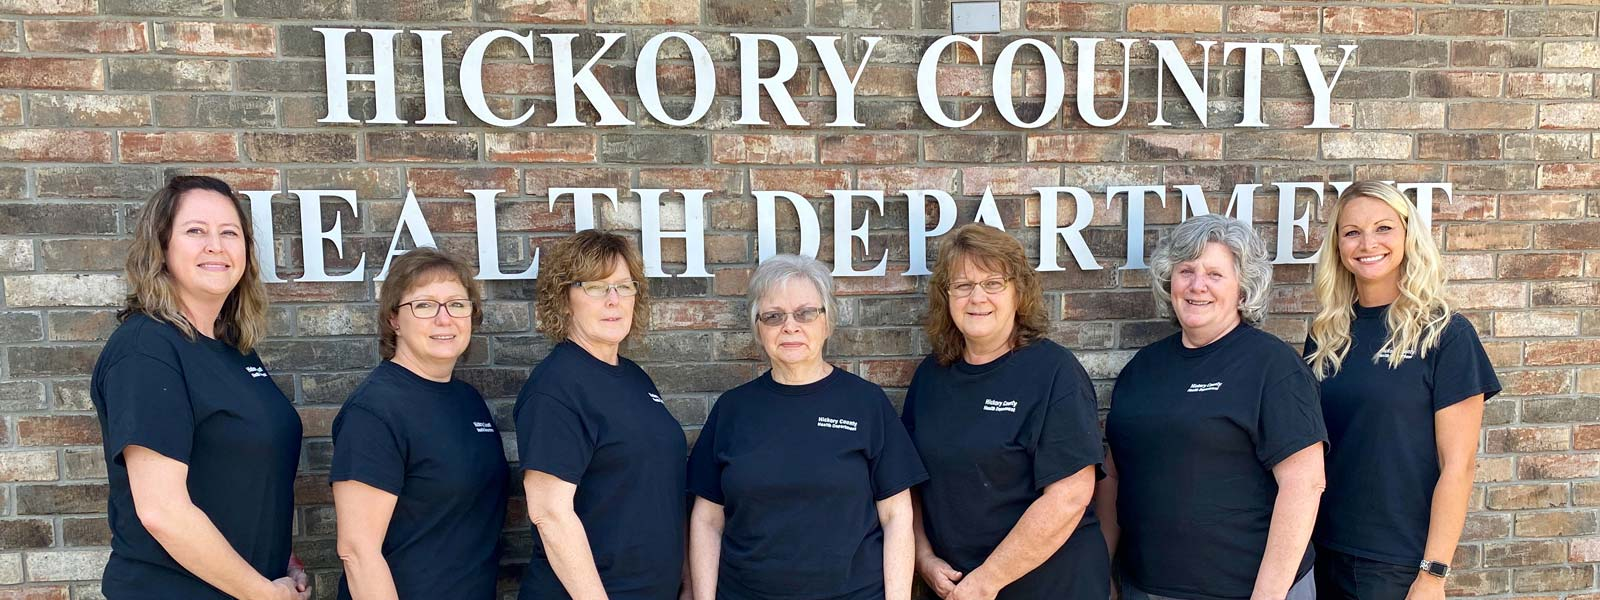 hickory county health dept staff